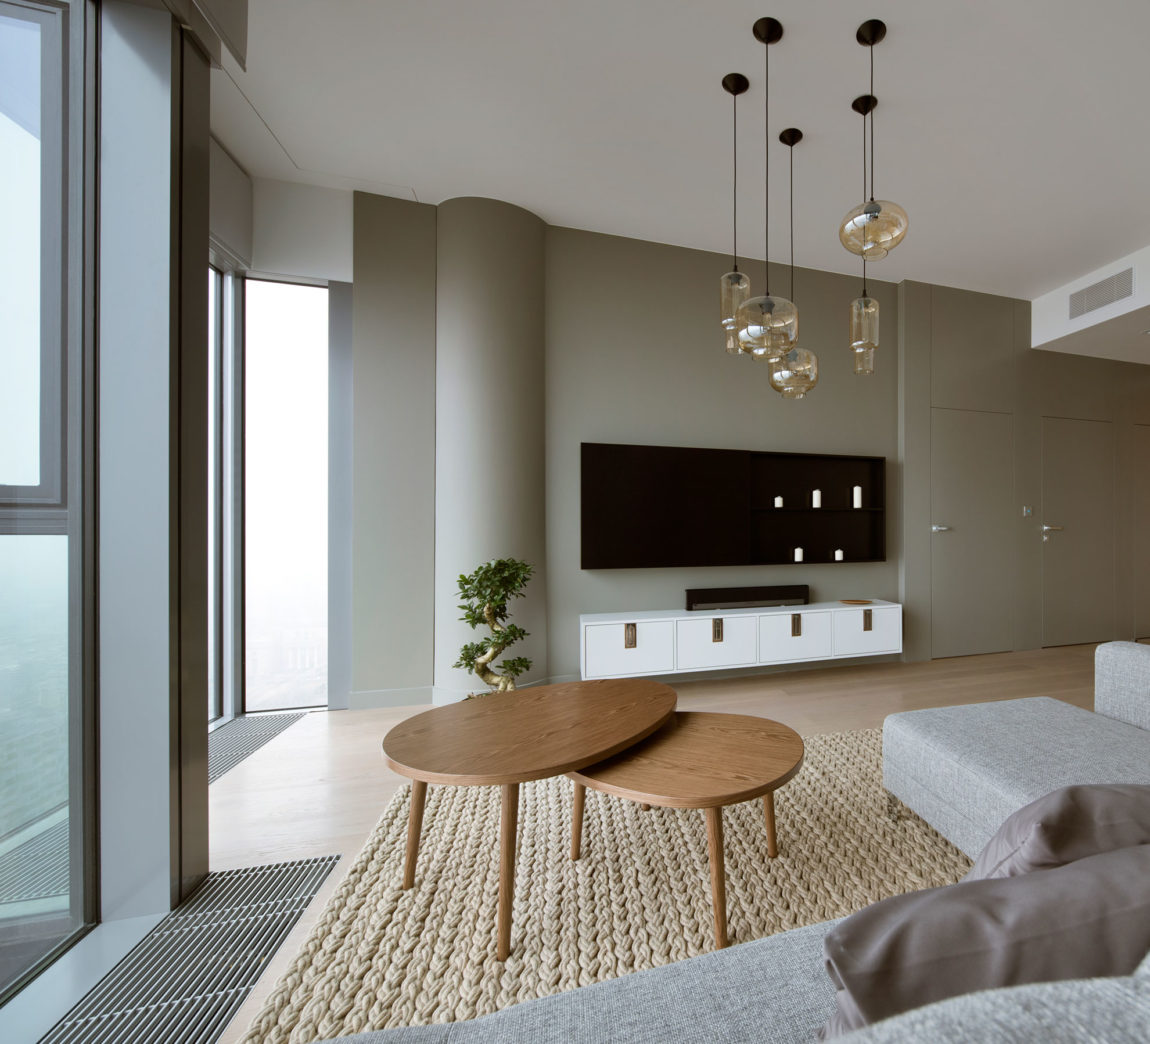 Enclave in the Clouds by HOLA Design (5)